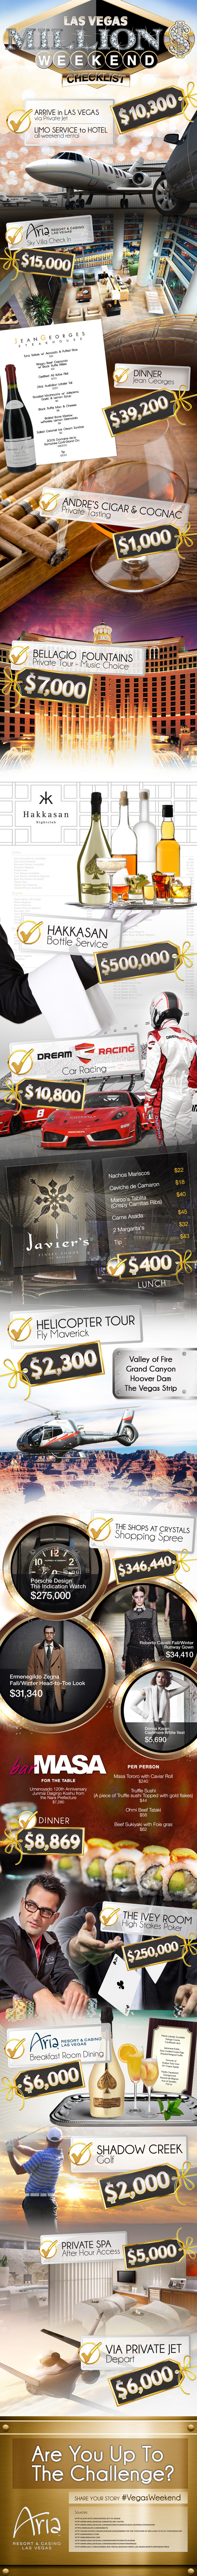 Las Vegas Million Dollar Checklist [Infographic]